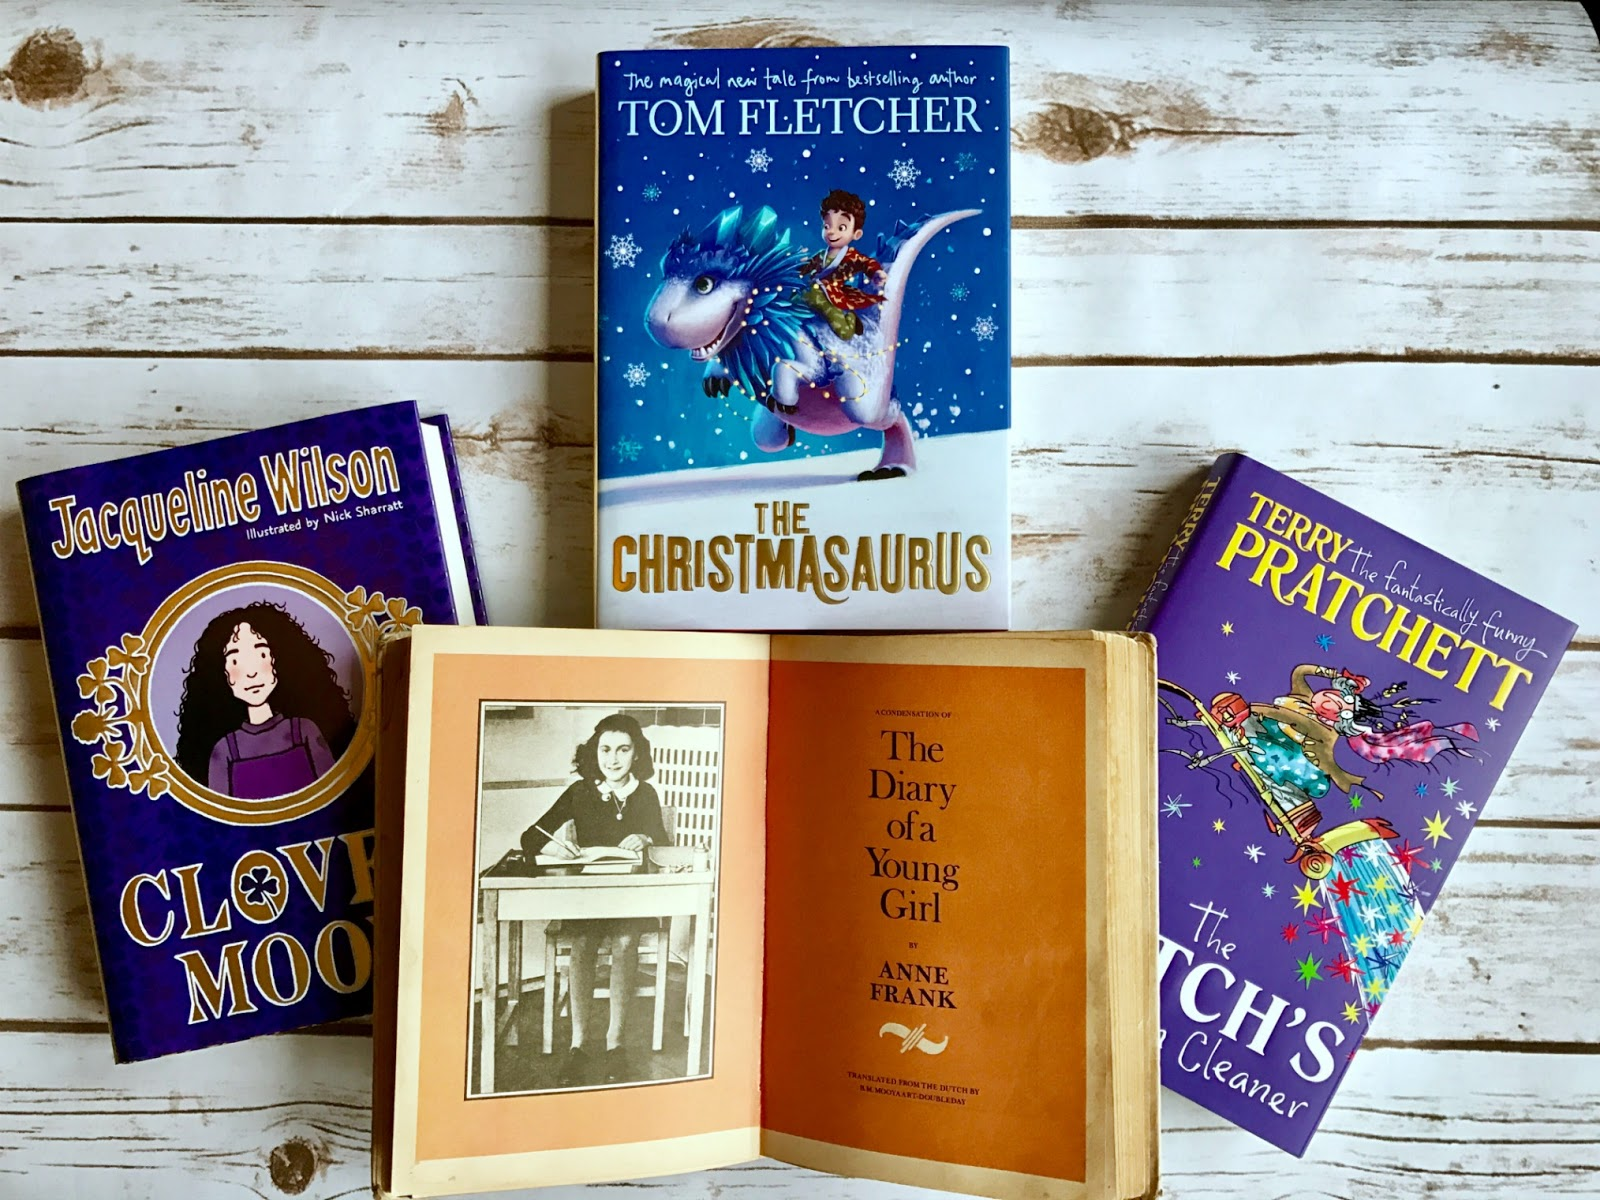 diary of a young girl by anne frank, Clover Moon by Jacqueline Wilson, Christmasaurus by Tom Fletcher, and The Witches Vacuum Cleaner by Terry Pratchett